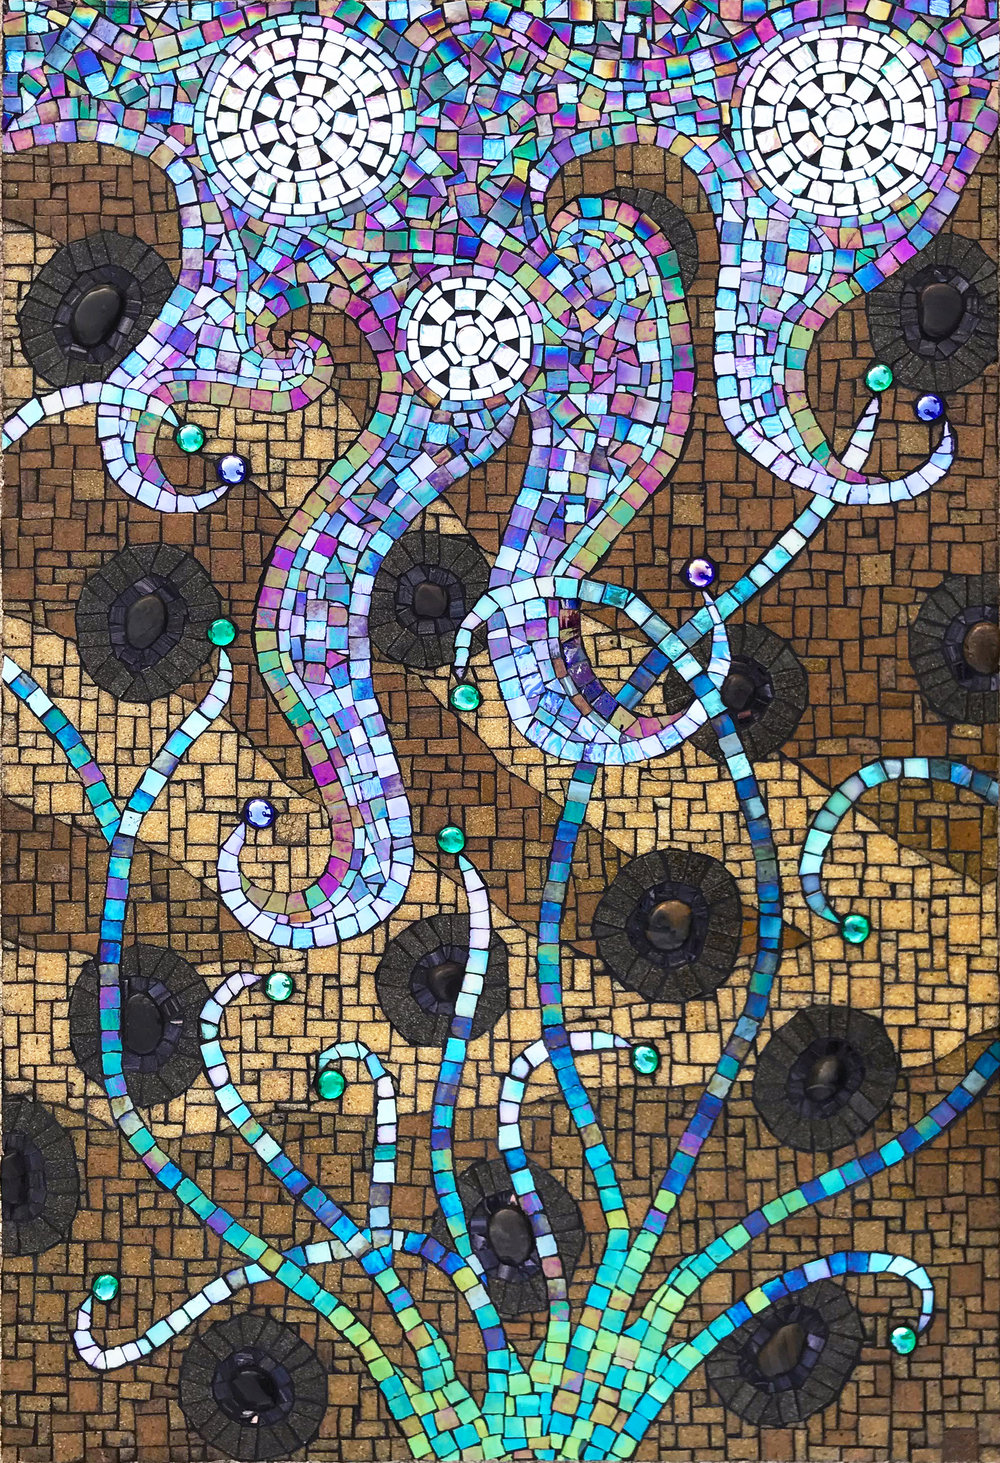 Cycles Mosaic